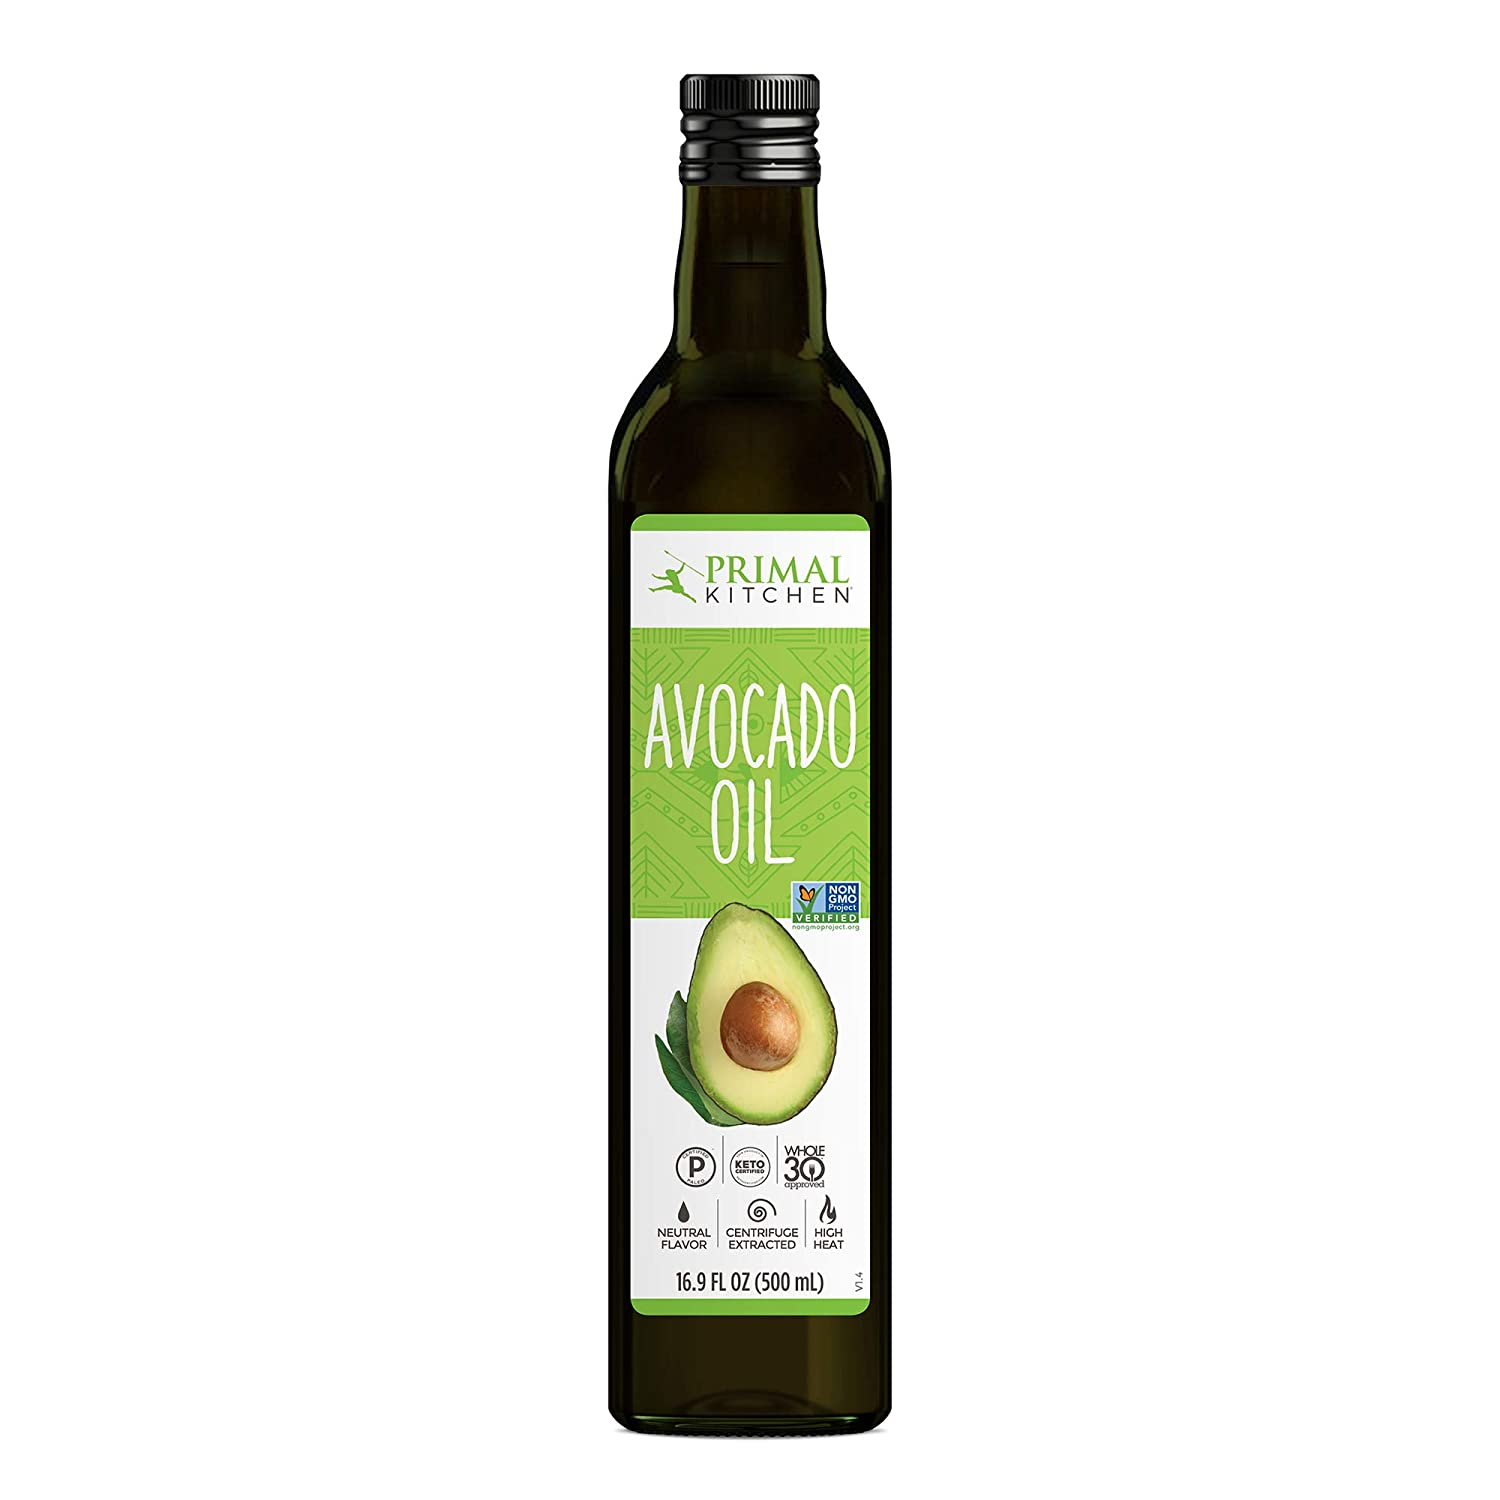 Primal Kitchen Avocado Oil Image